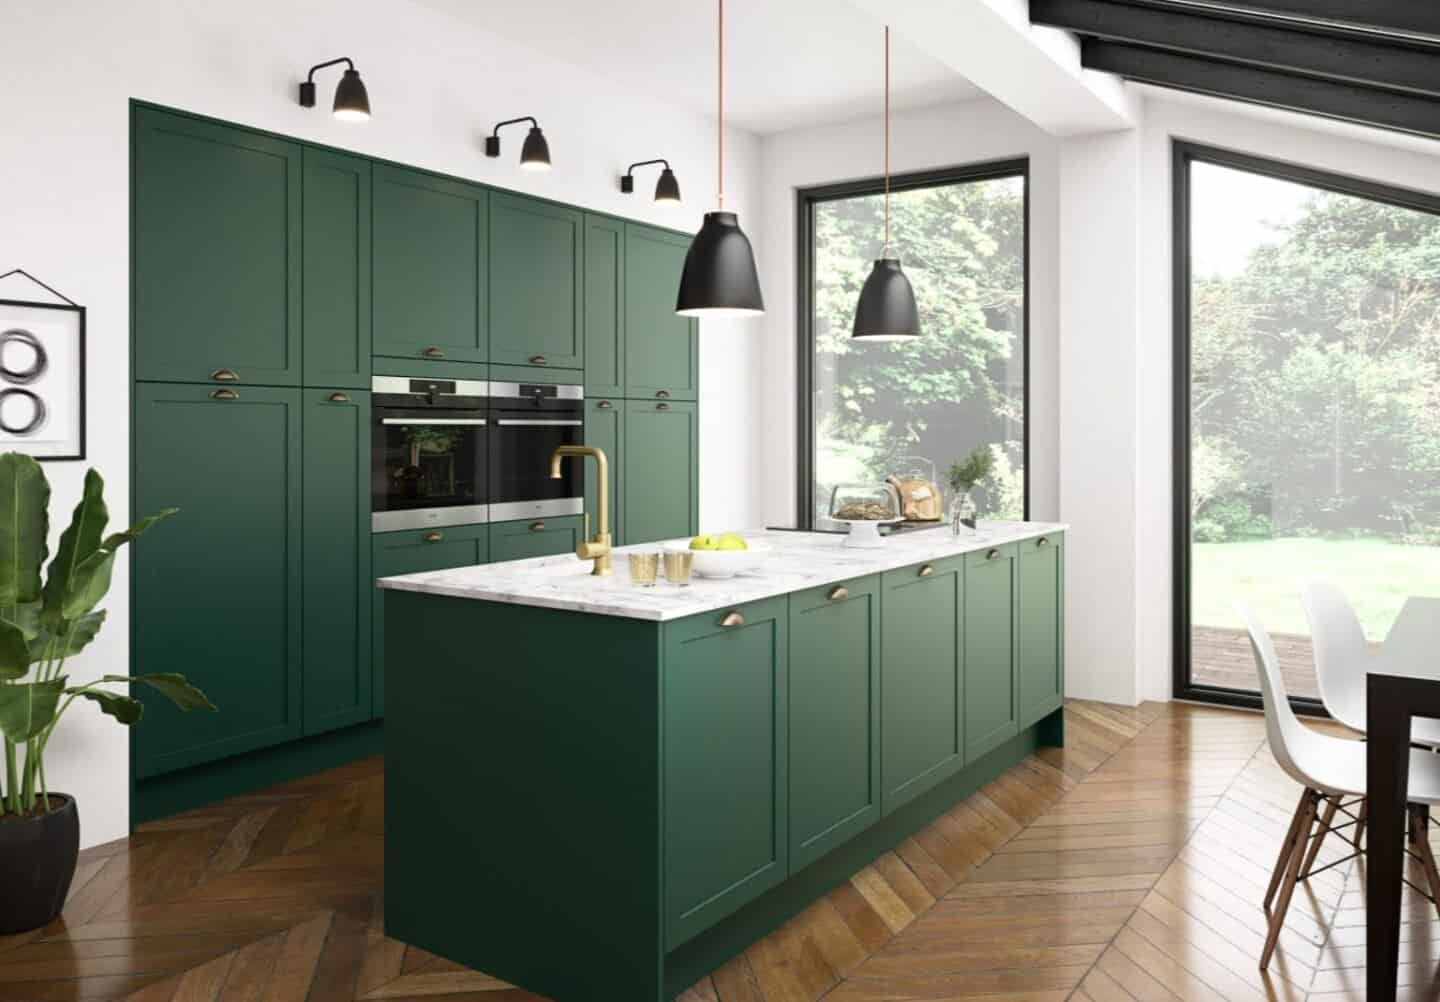 Magnet's Dunham Kitchen in Forest Walk. A deep dark green kitchen island with marble effect worktop in front of a run of green wall cabinets. Two large windows allow light to flood the kitchen